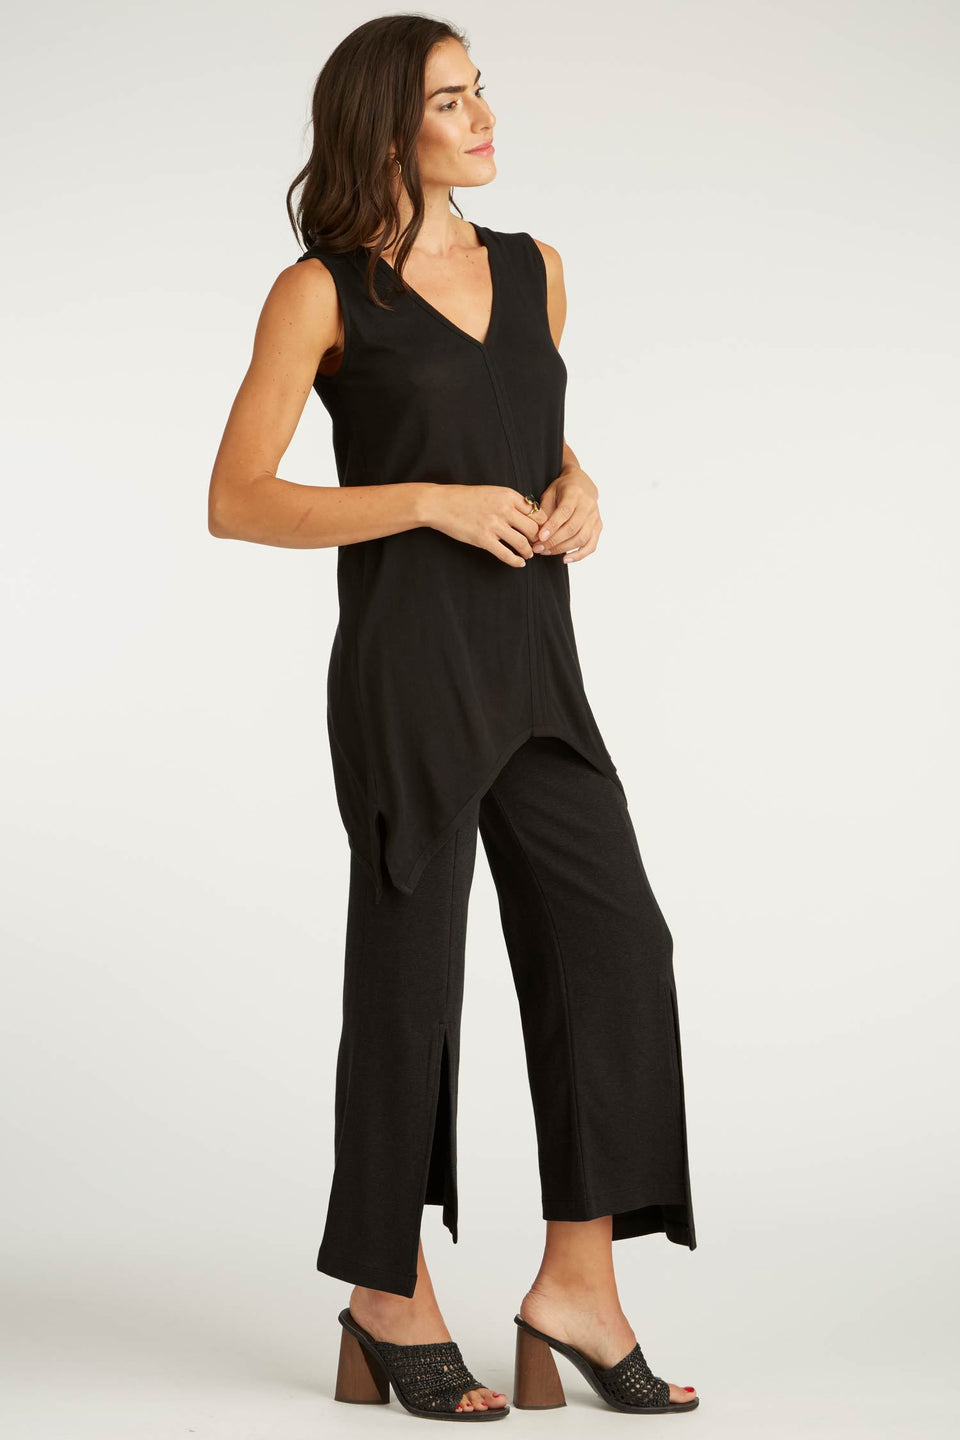 Cropped Slit Pant in Black